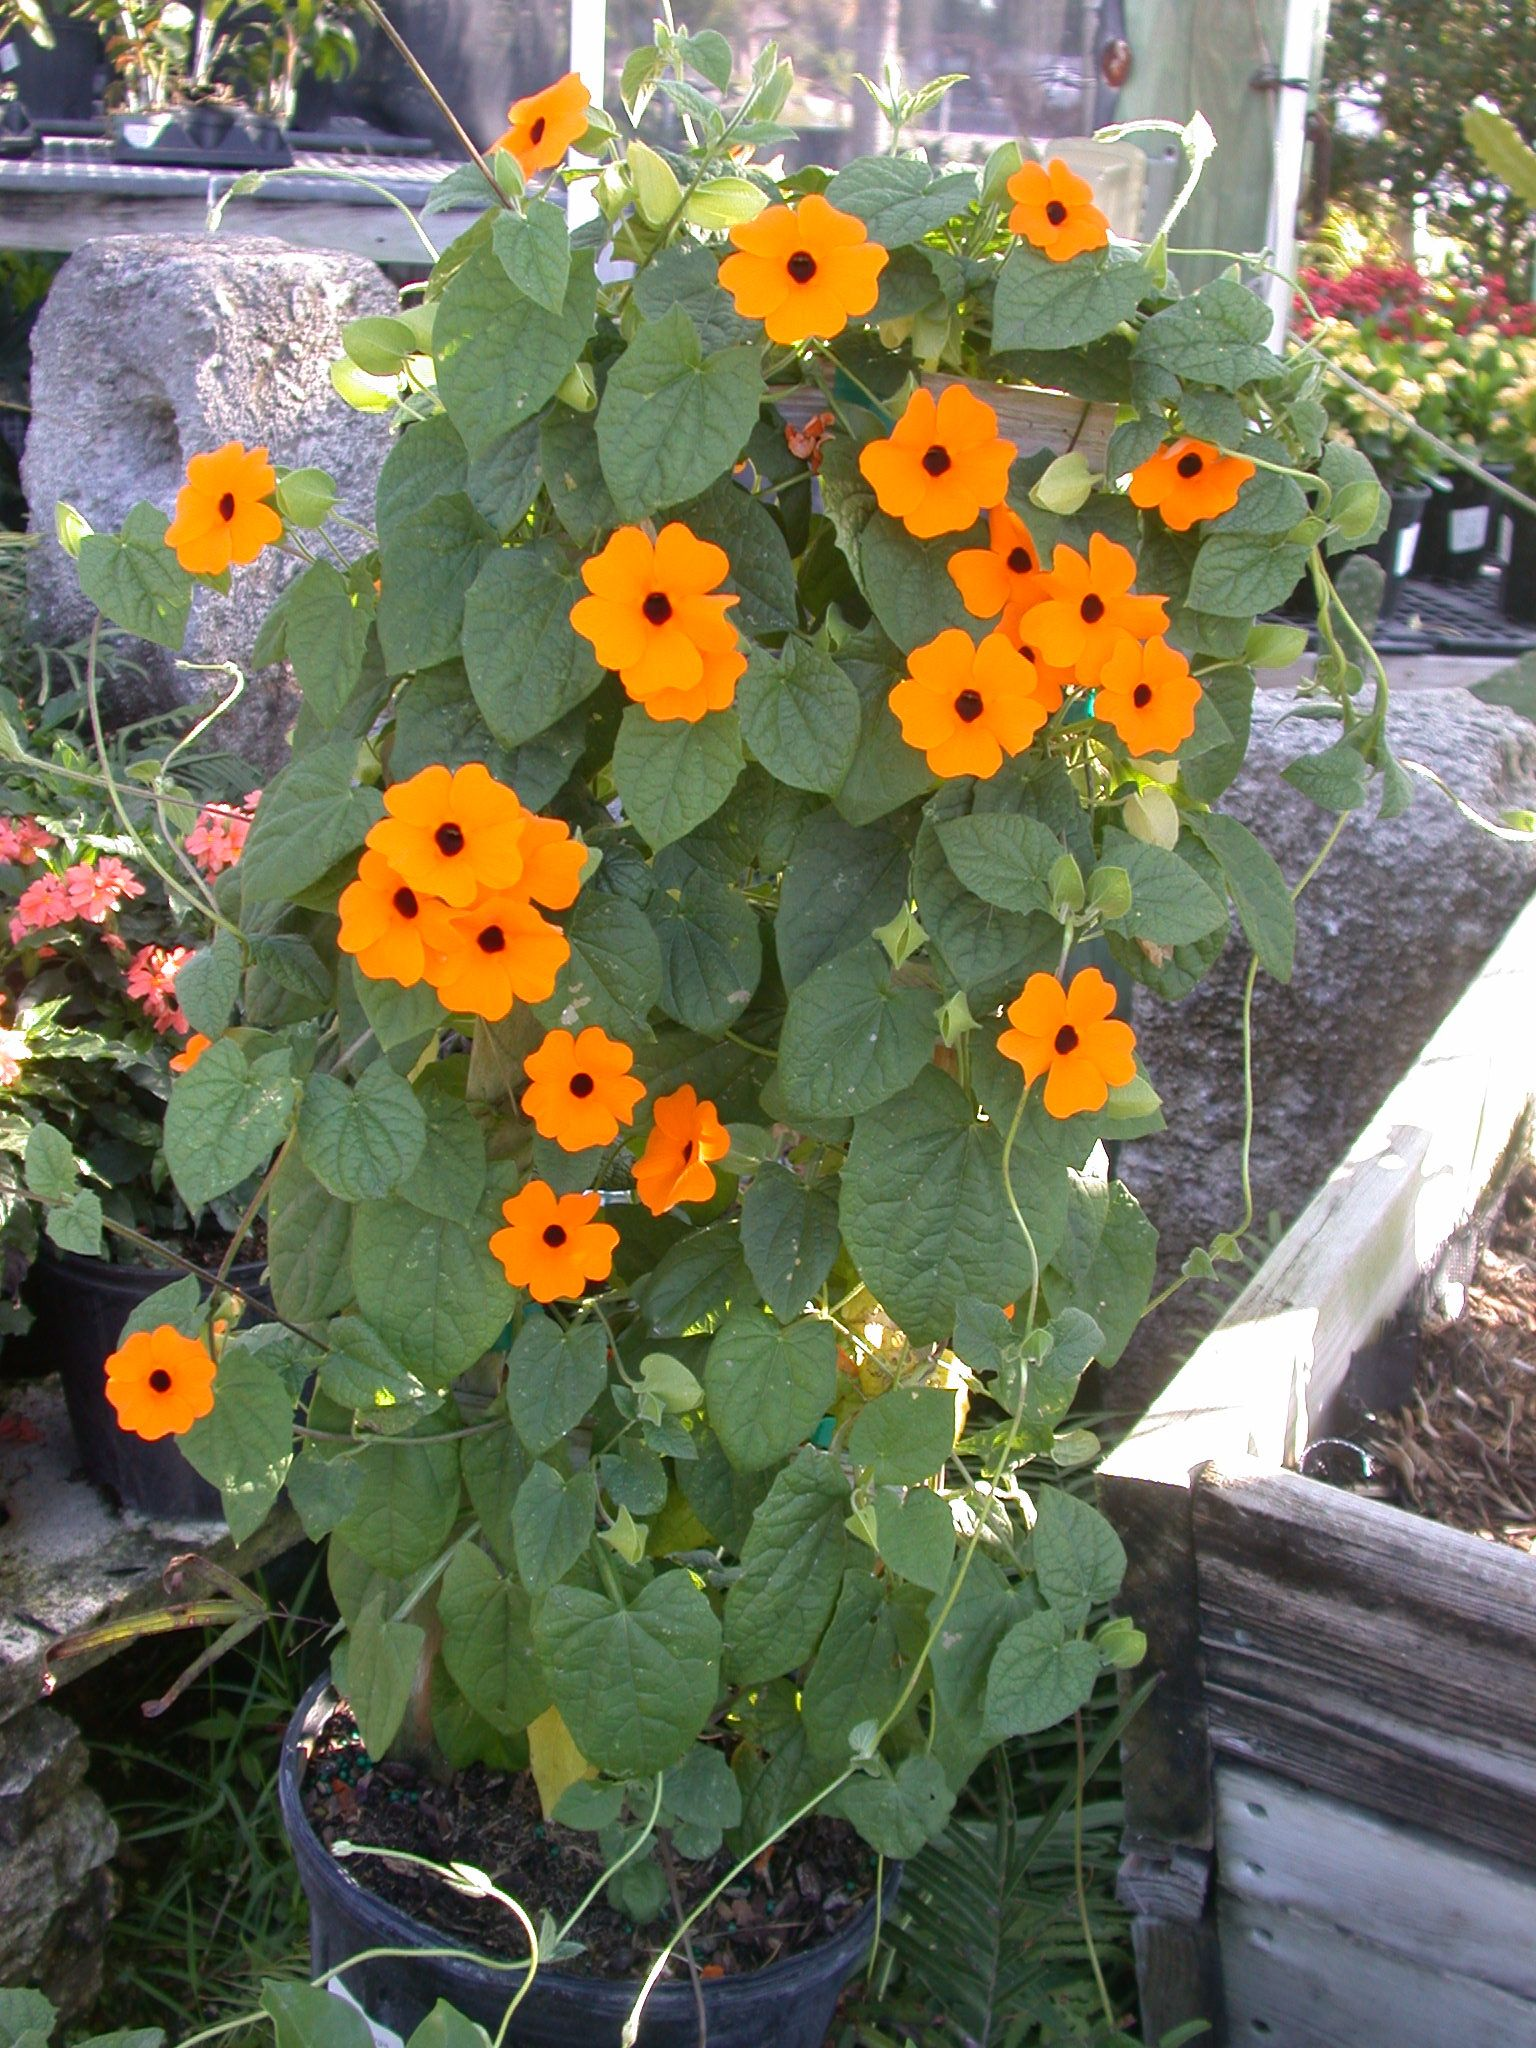 Thunbergia Orange Beauty Is A Climbing Vine That Can Do Well In